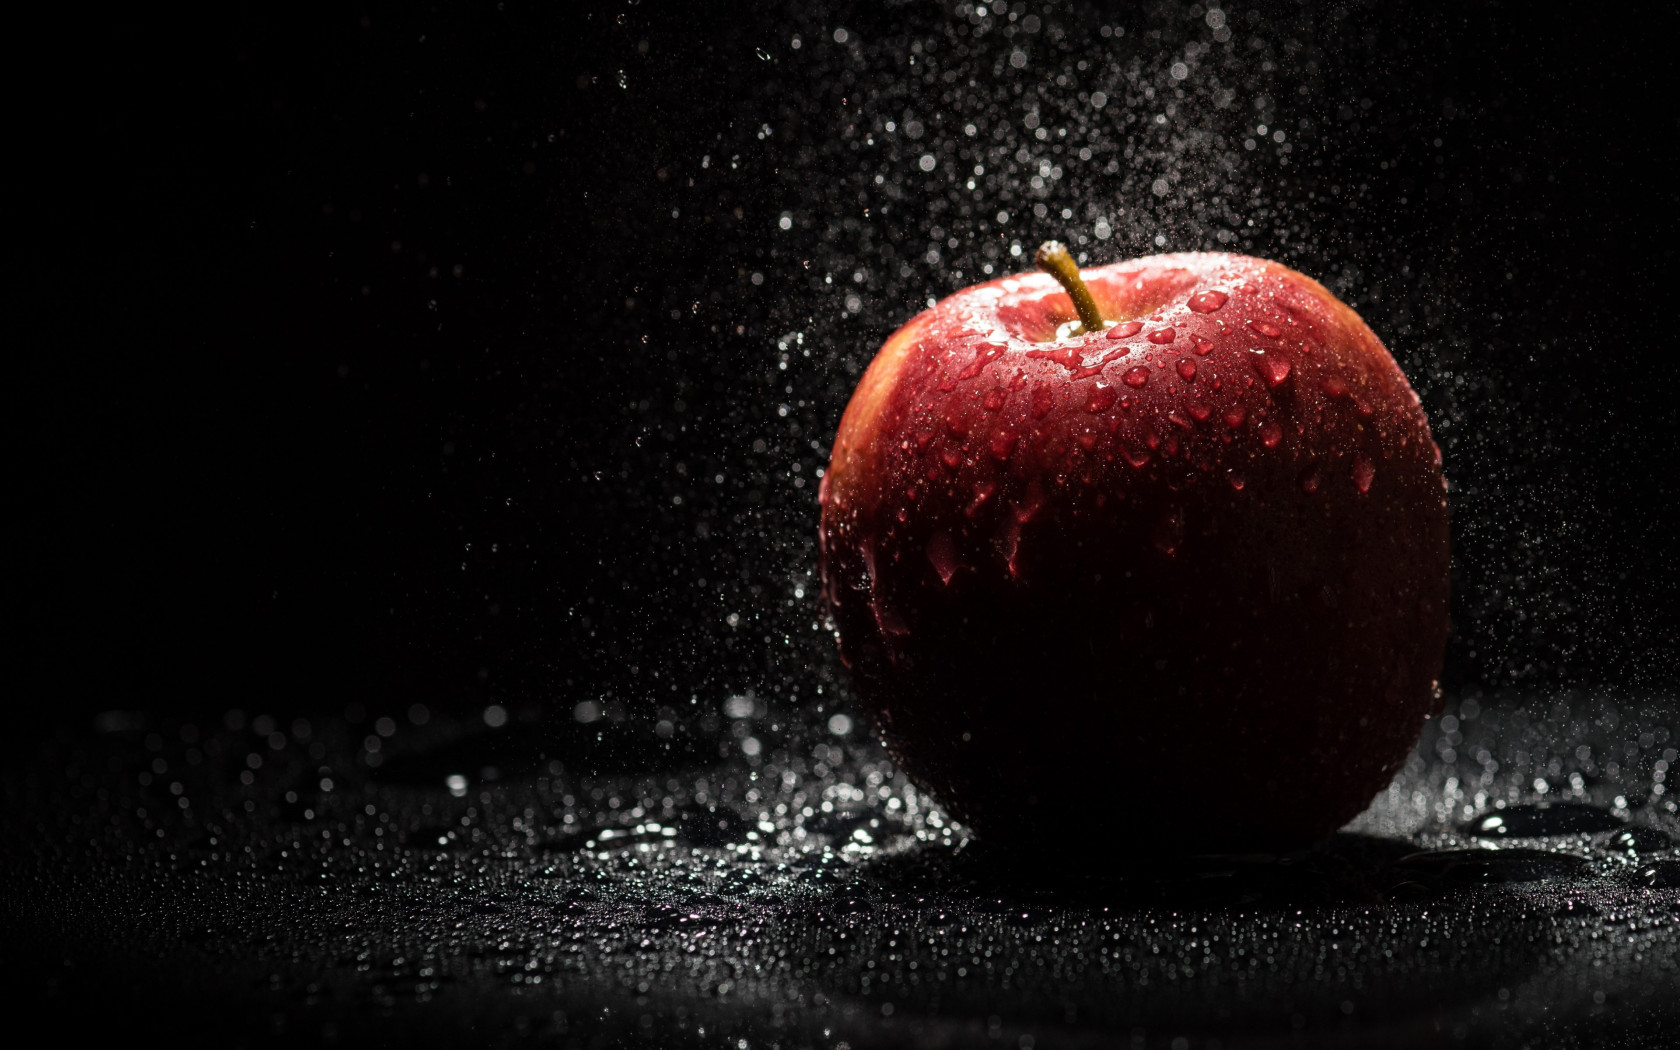 The apple, natural red apple wallpaper 1680x1050